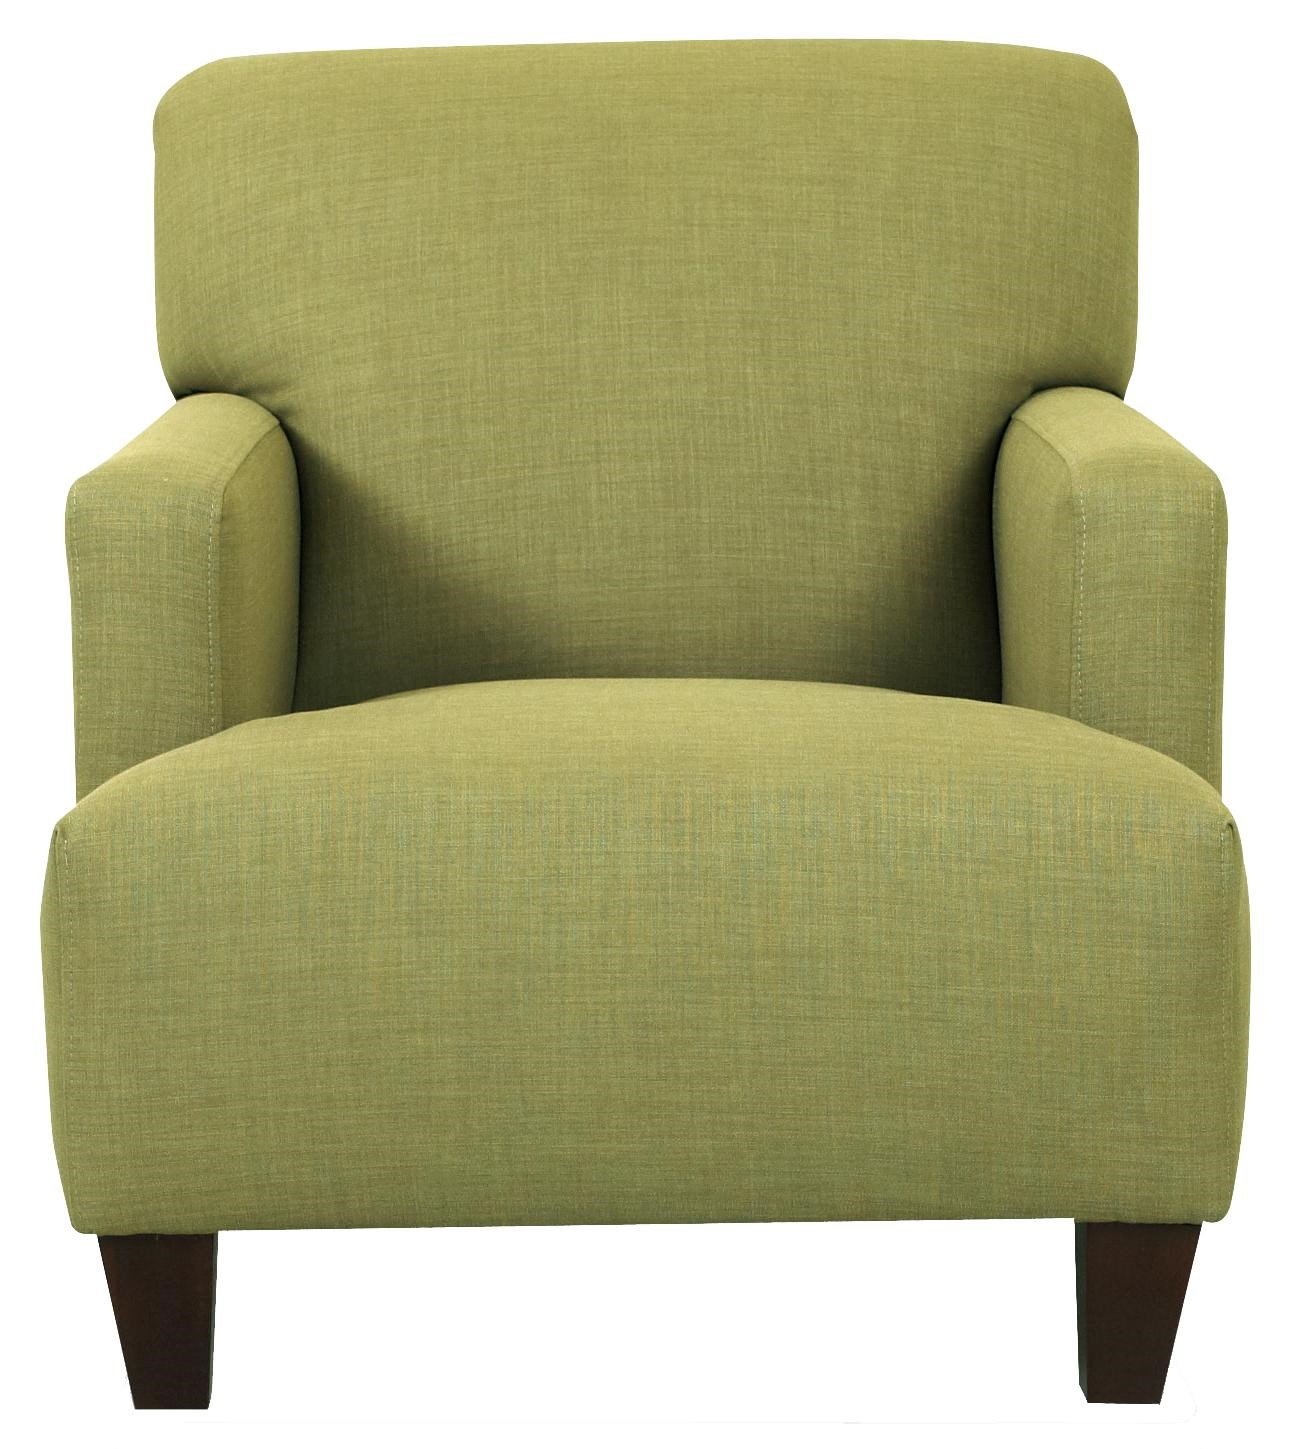 Klaussner Chairs and Accents Tanner Modern Track Arm Chair